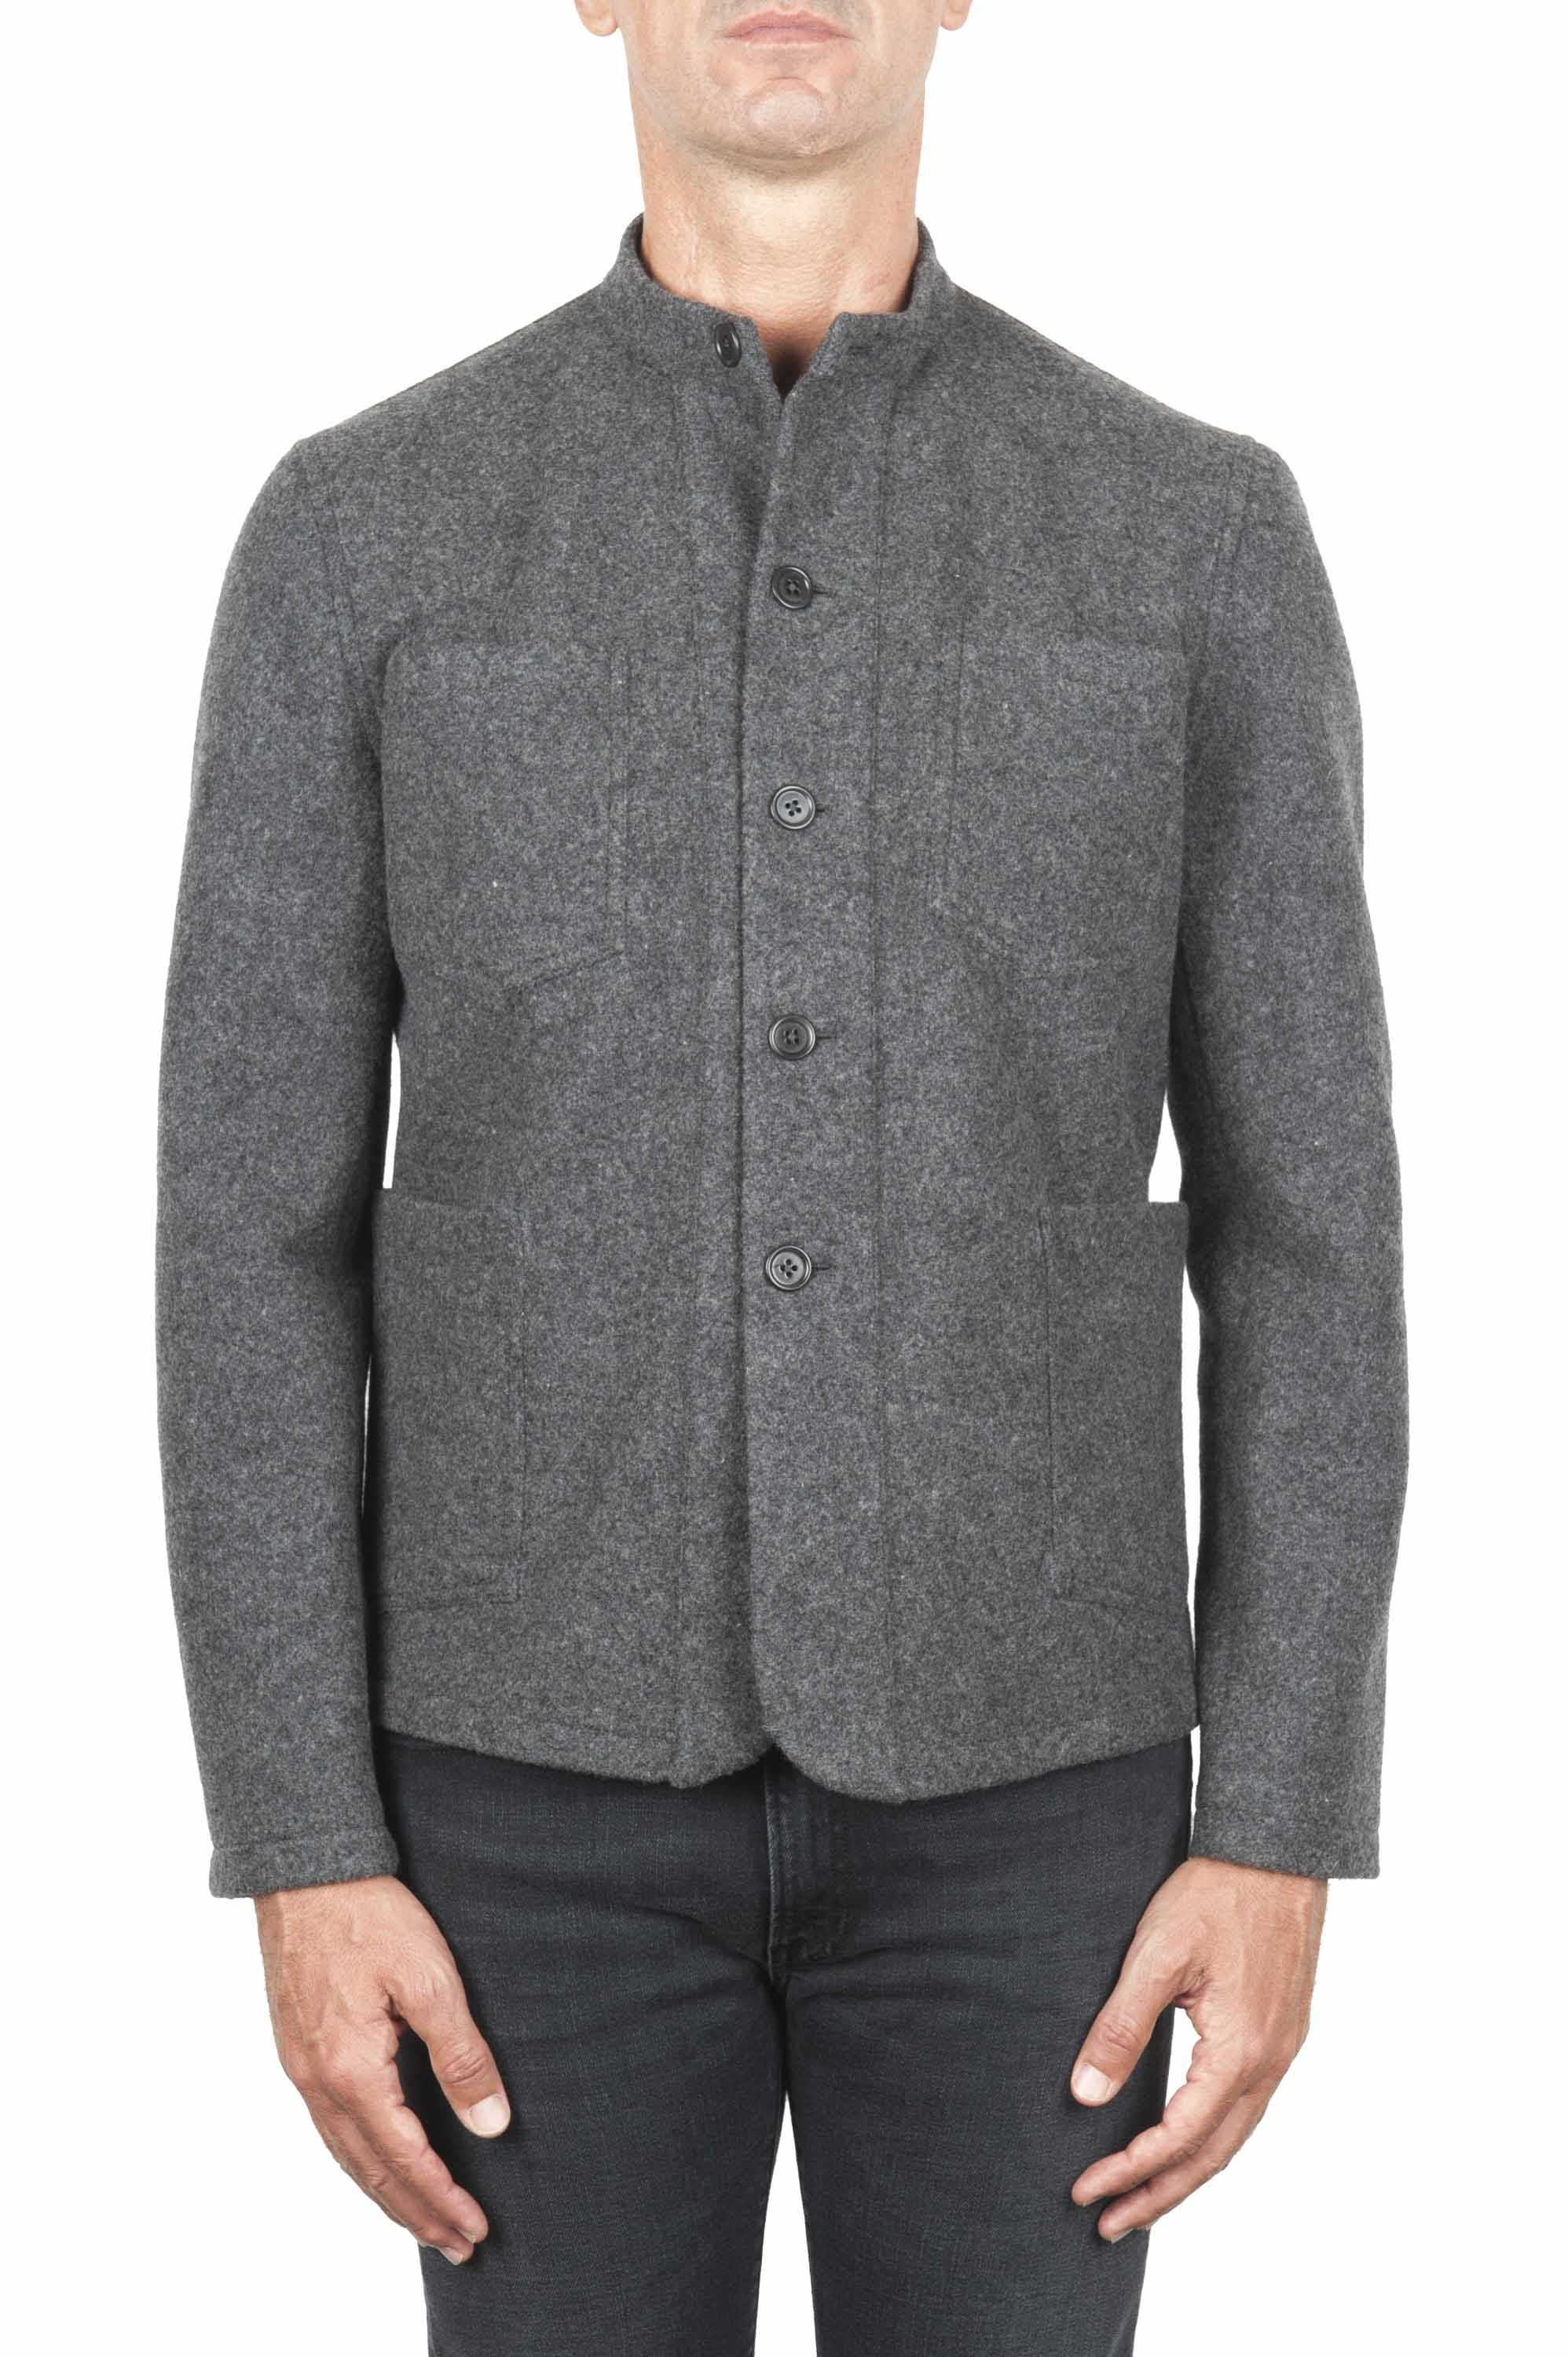 SBU 01326_19AW Grey mandarin collar sartorial work jacket 01